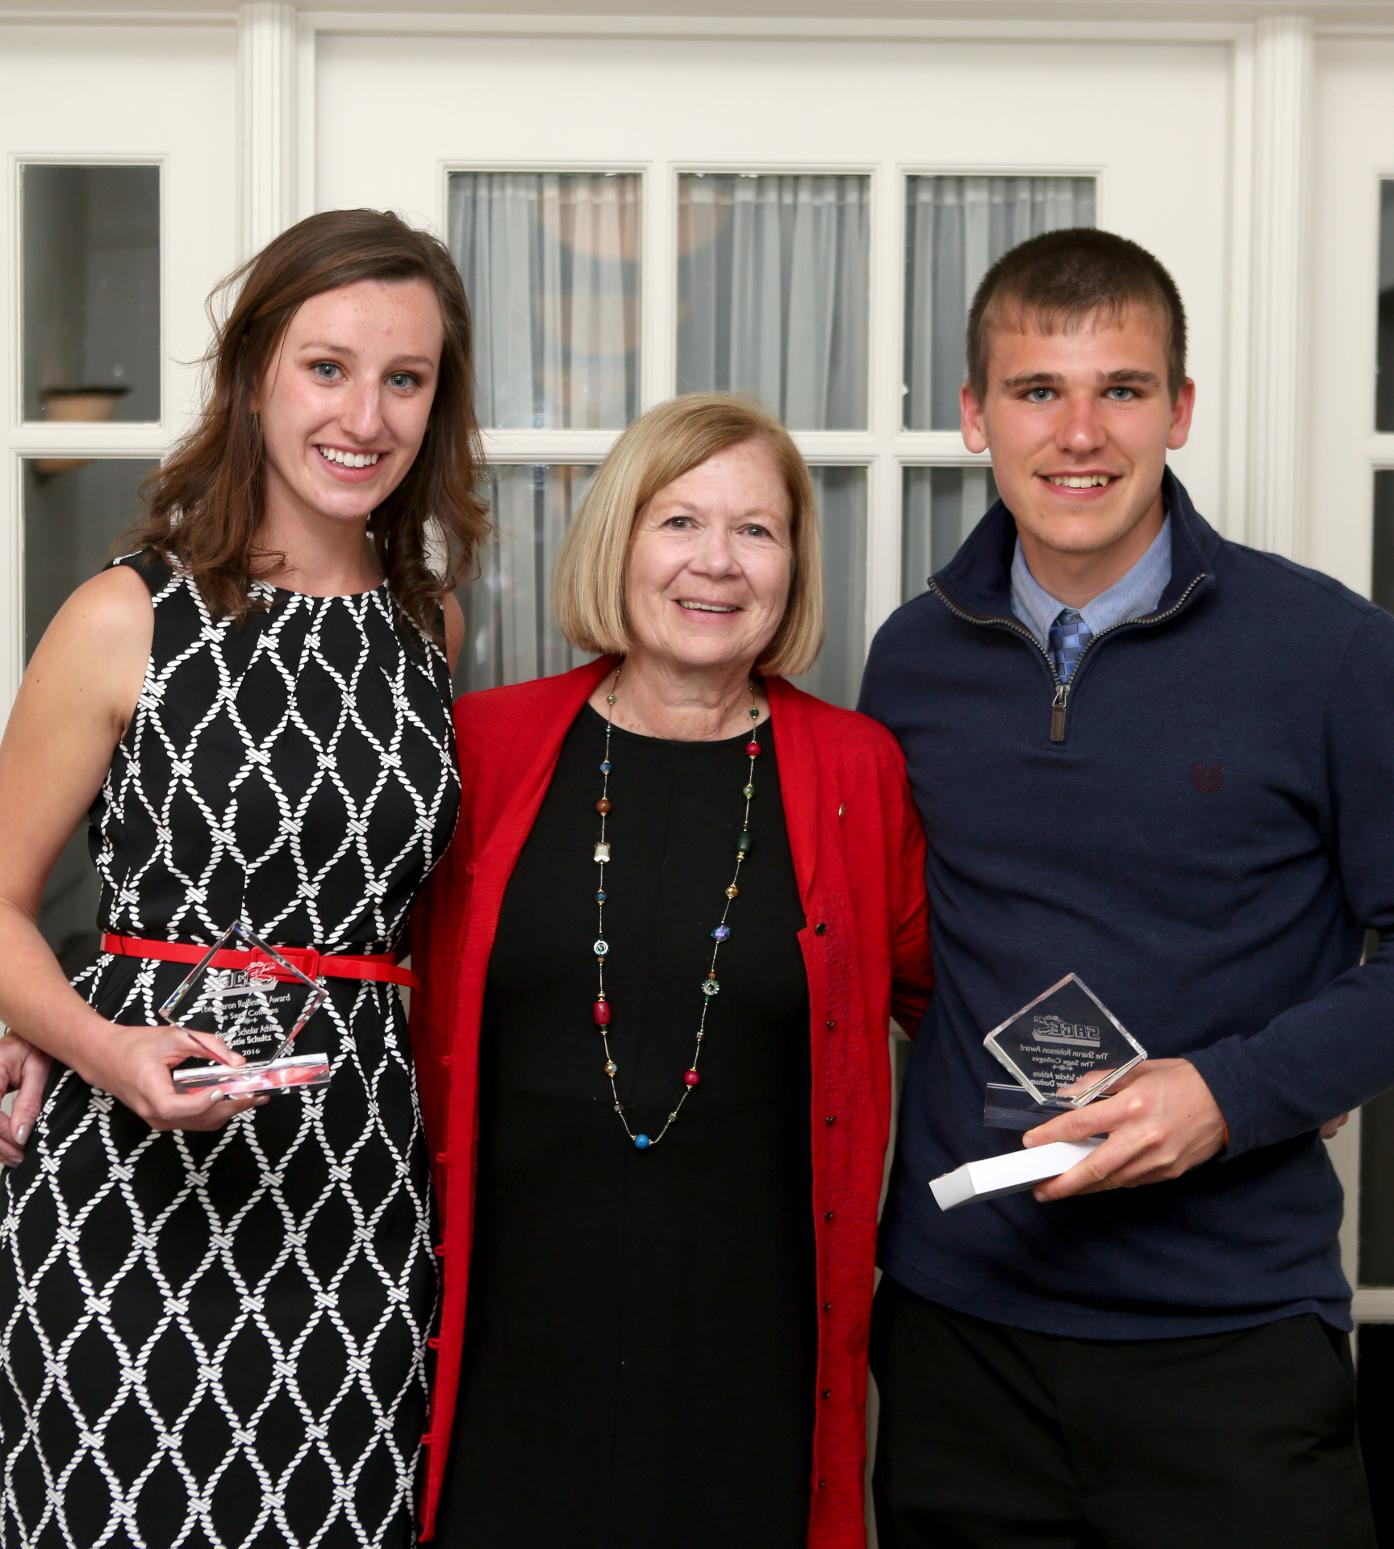 Chris Dunham and Katie Schultz Honored with Dean Sharon Robinson Scholar-Athlete Award